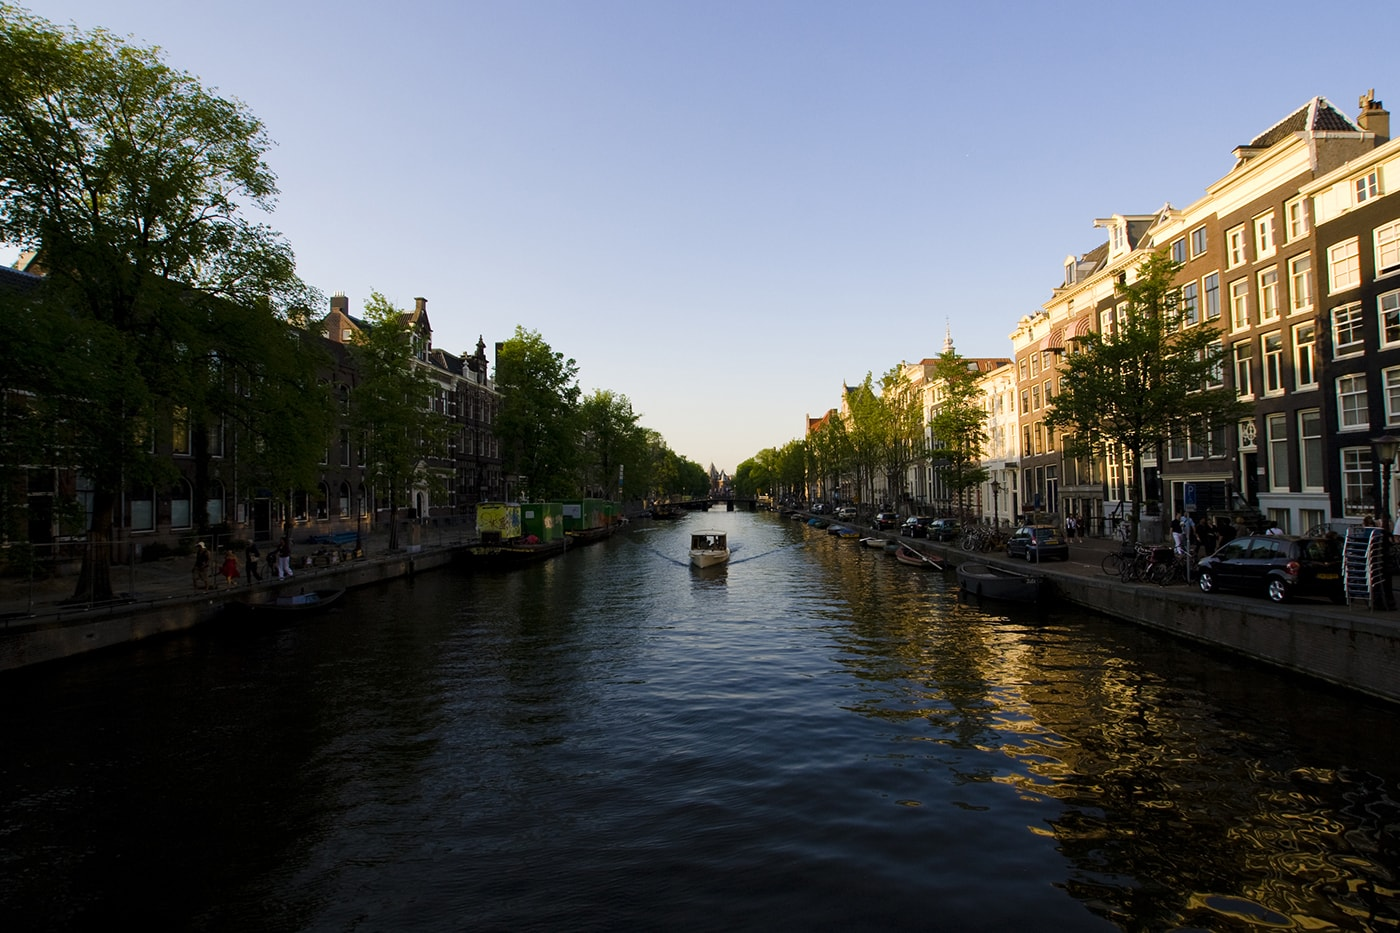 Canals in Amsterdam, The Netherlands.